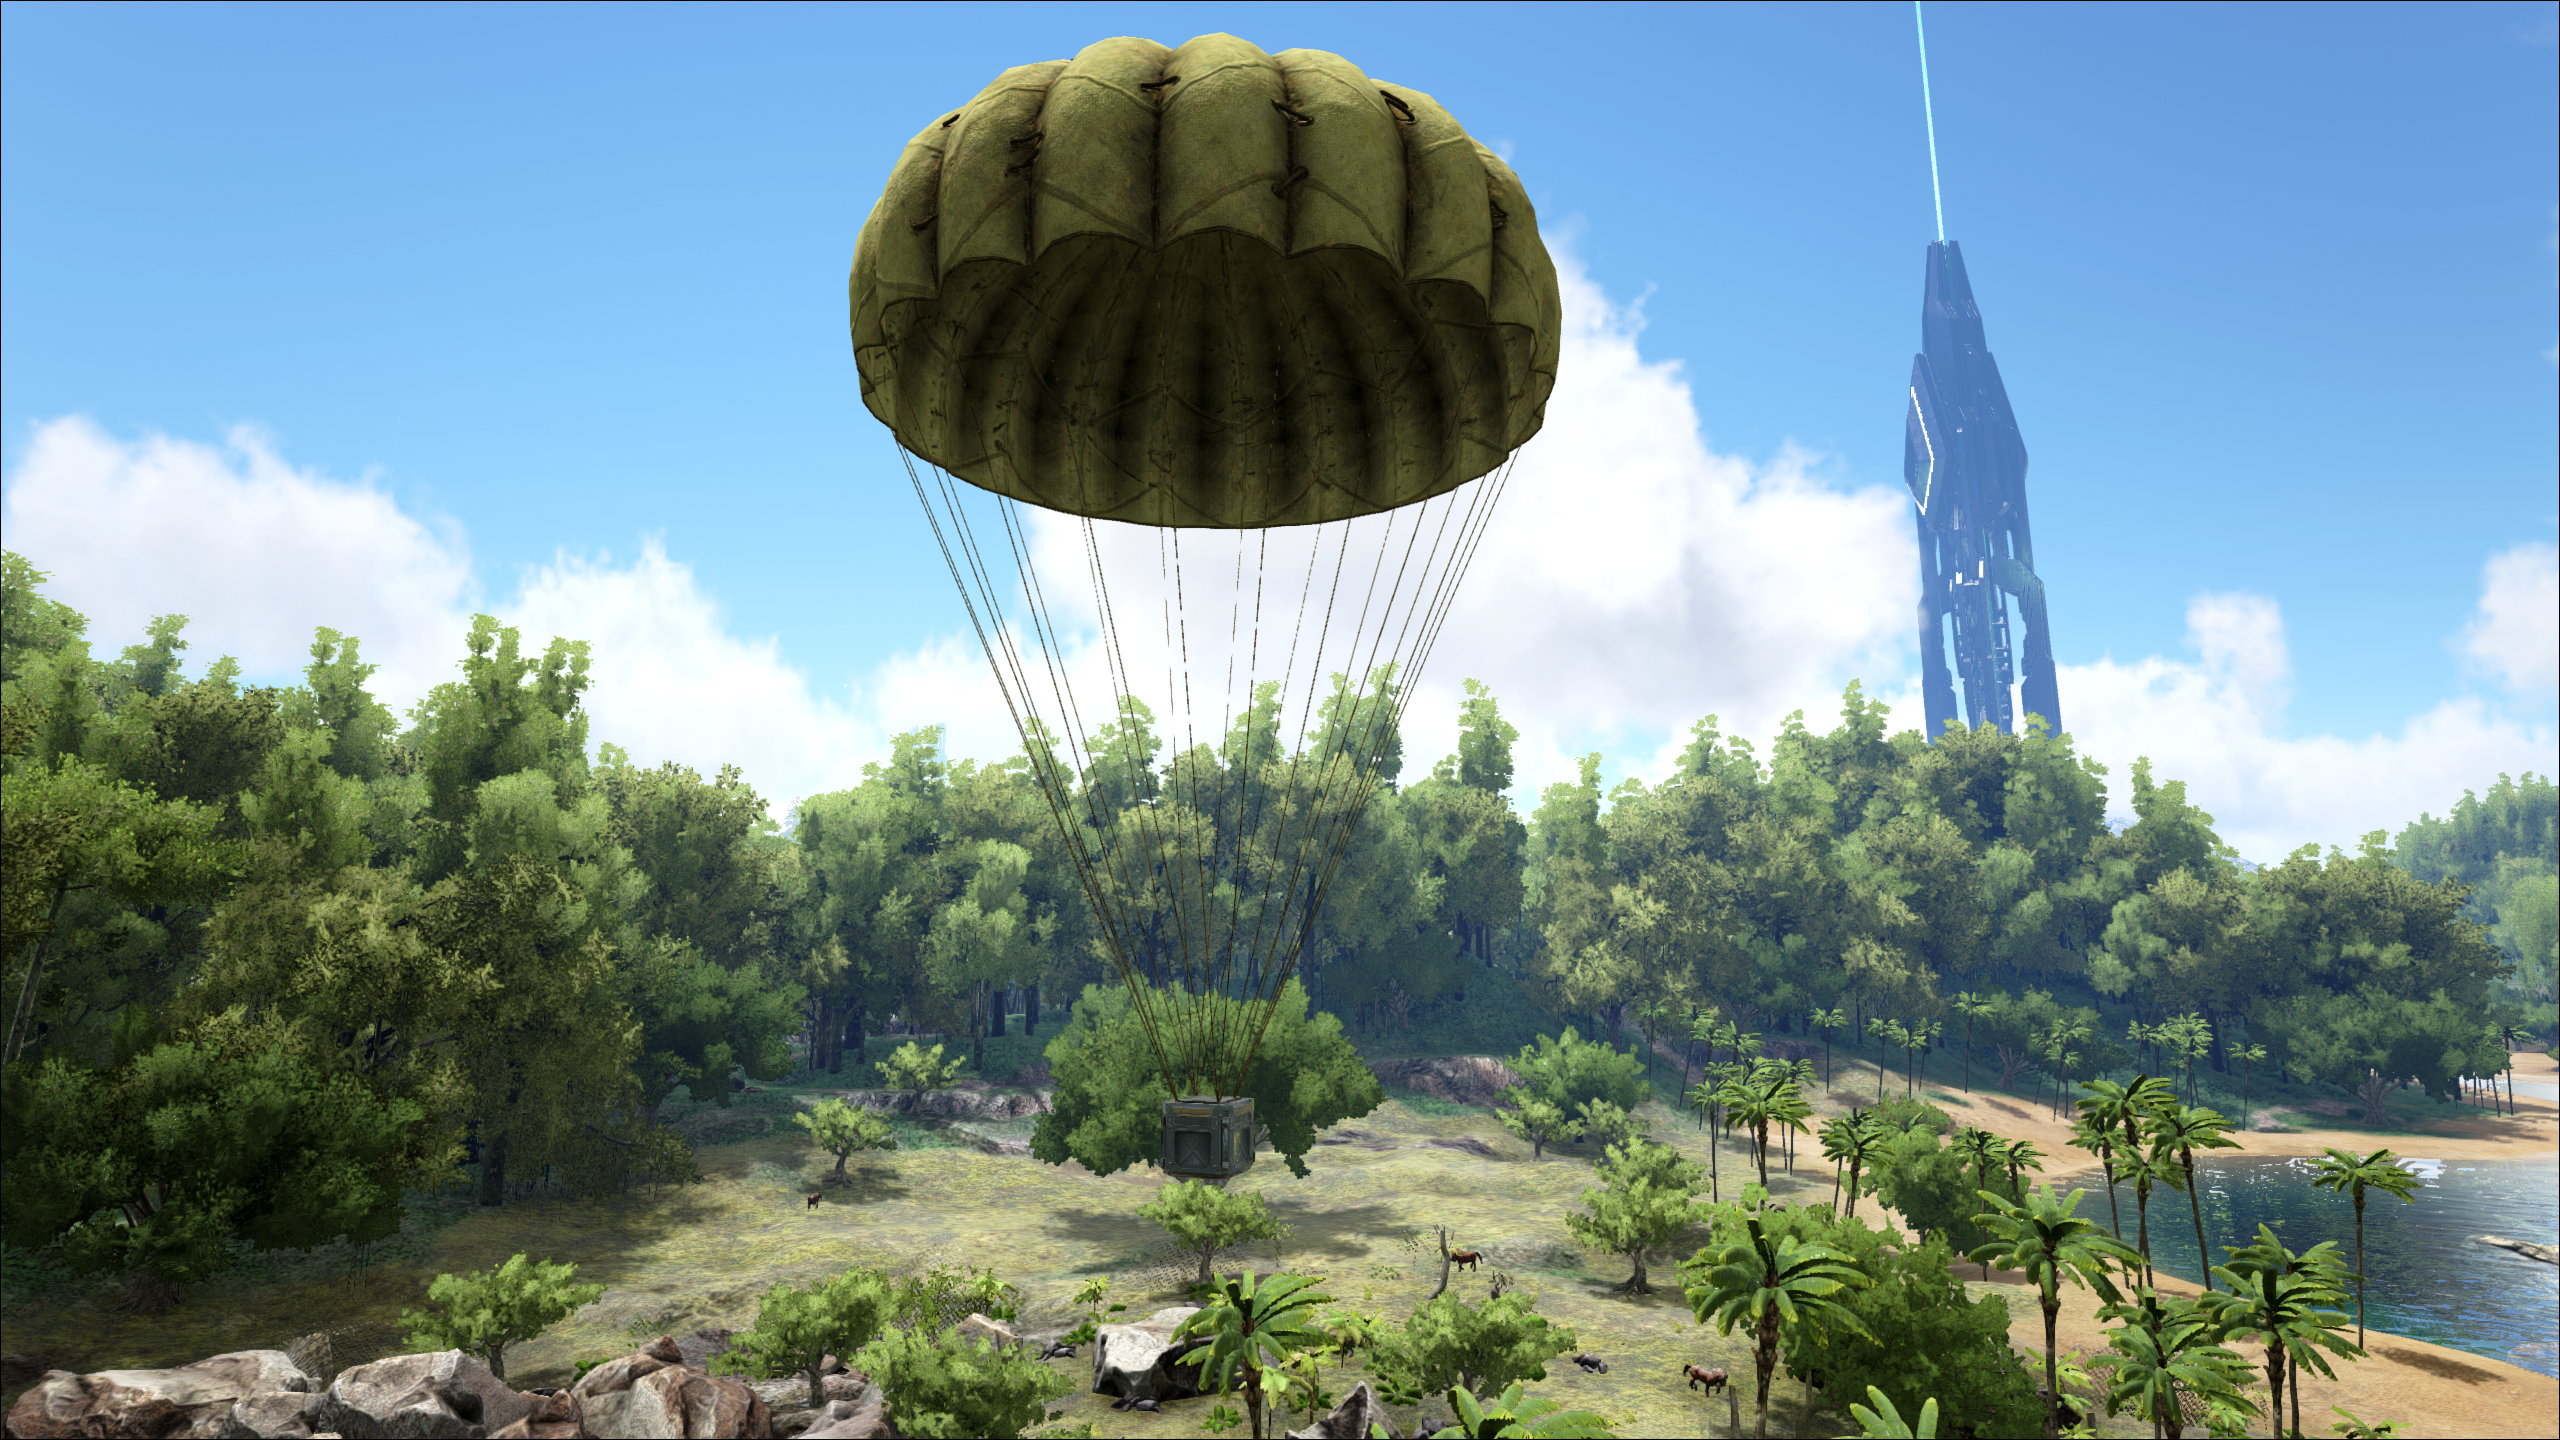 Supply crate being dropped by parachute